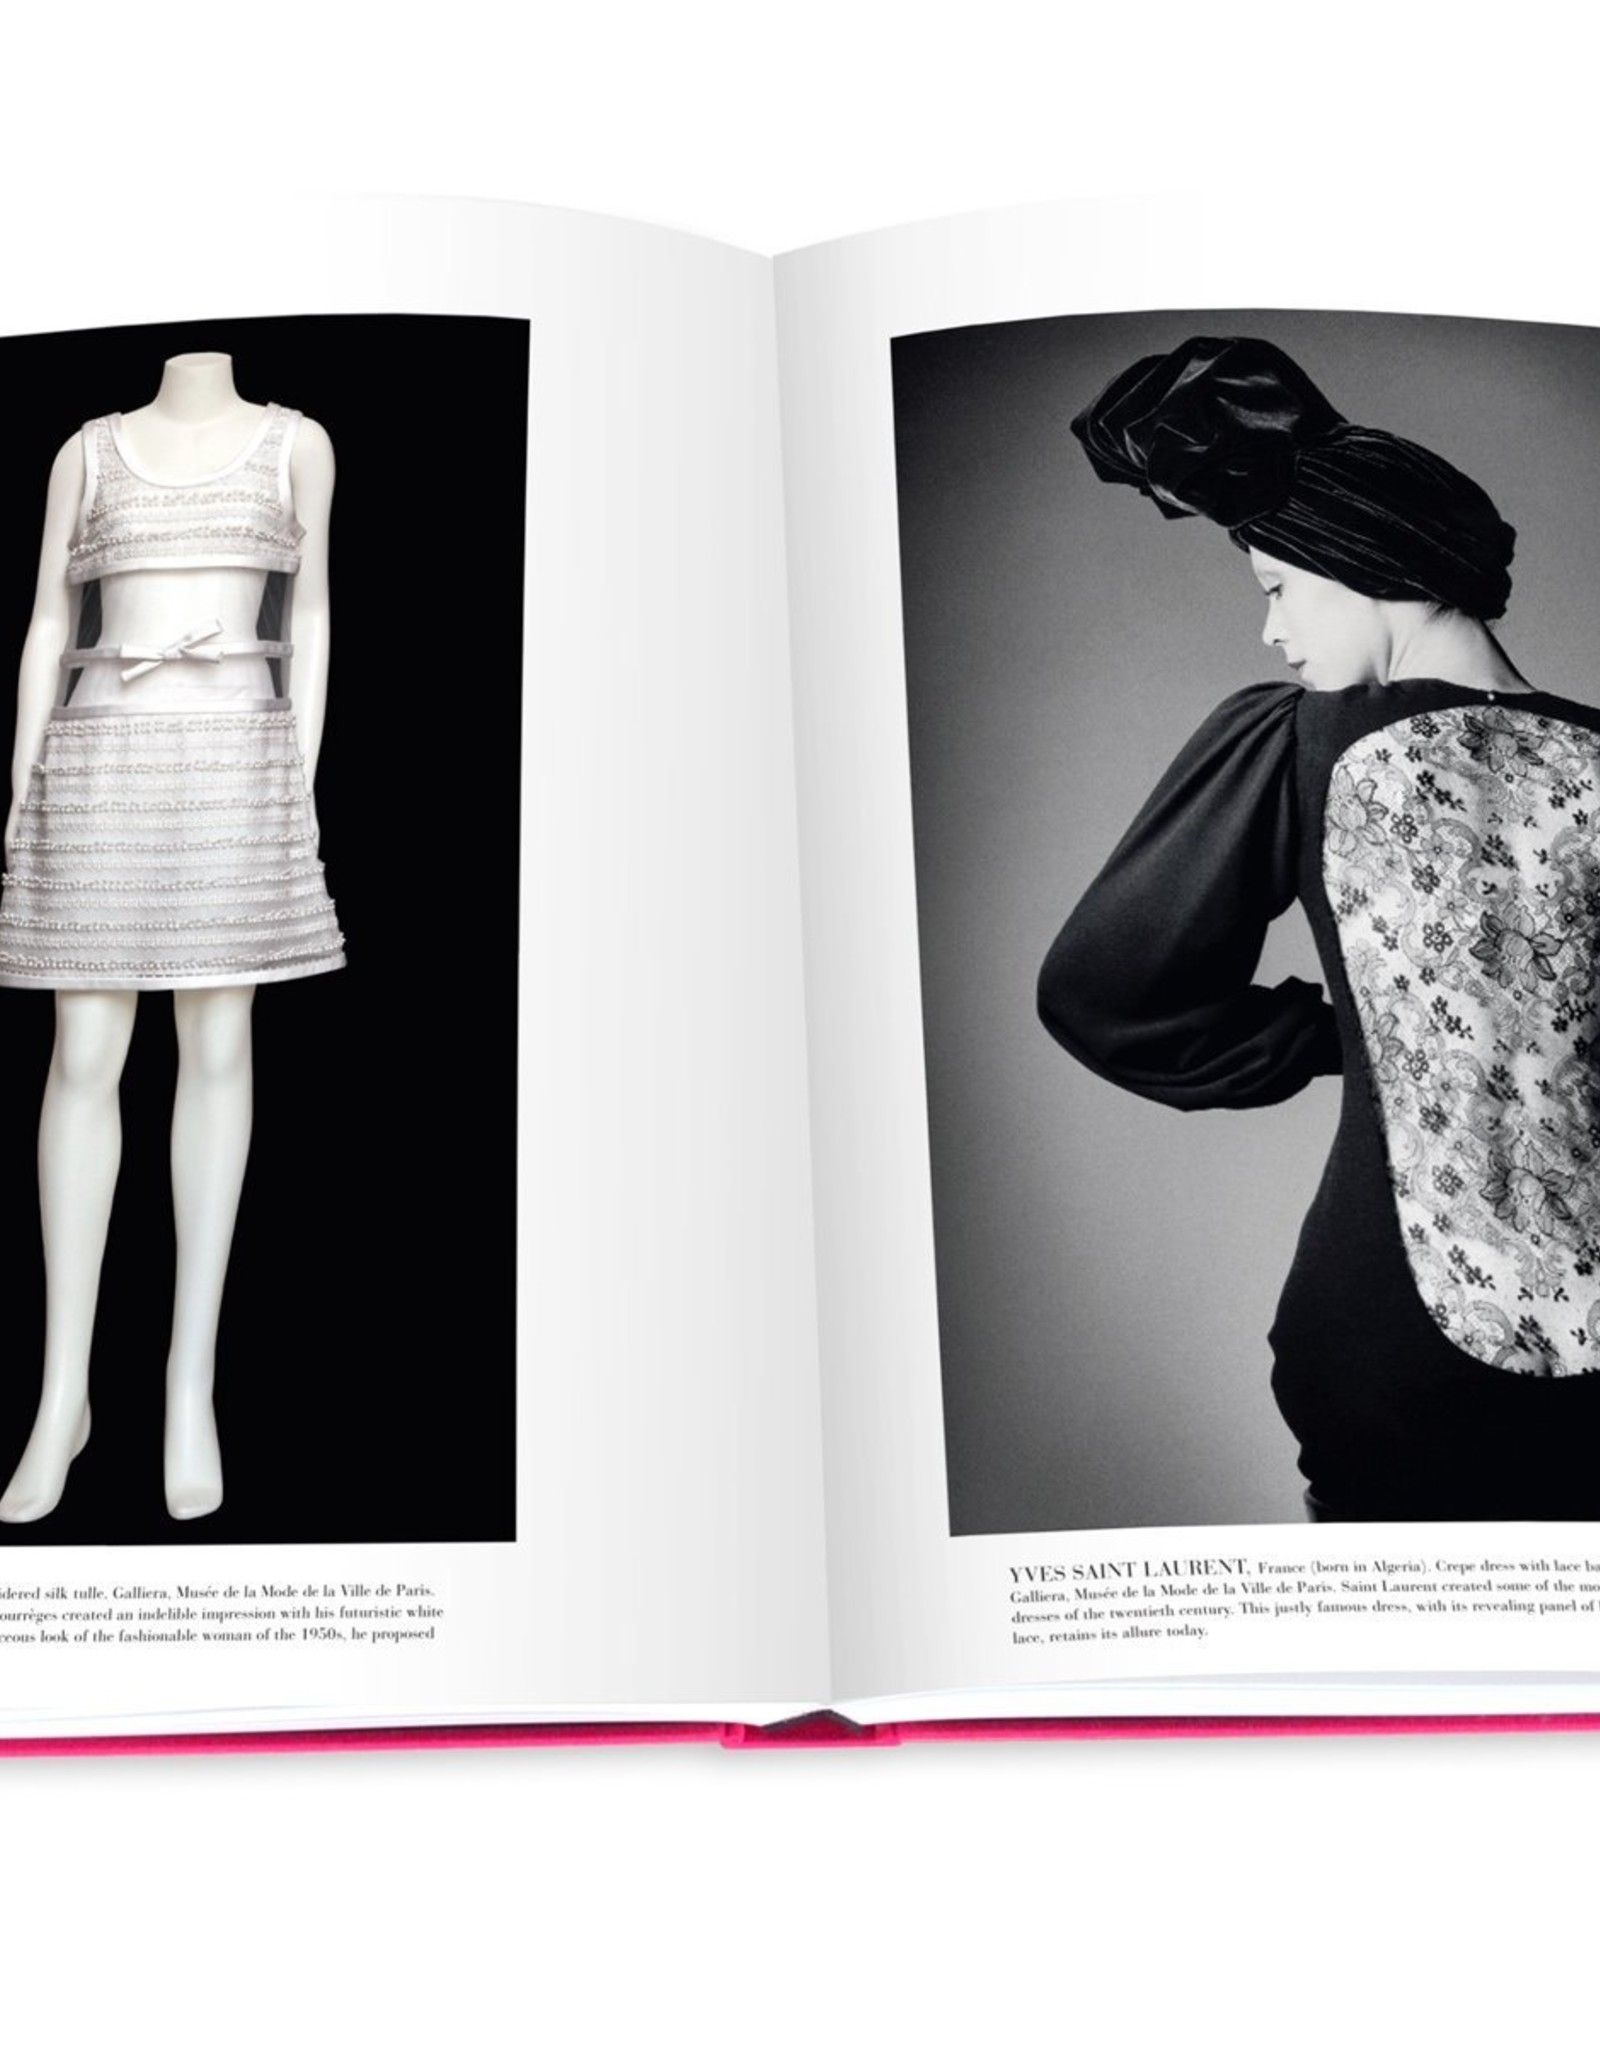 ASSOULINE THE IMPOSSIBLE COLLECTION OF FASHION